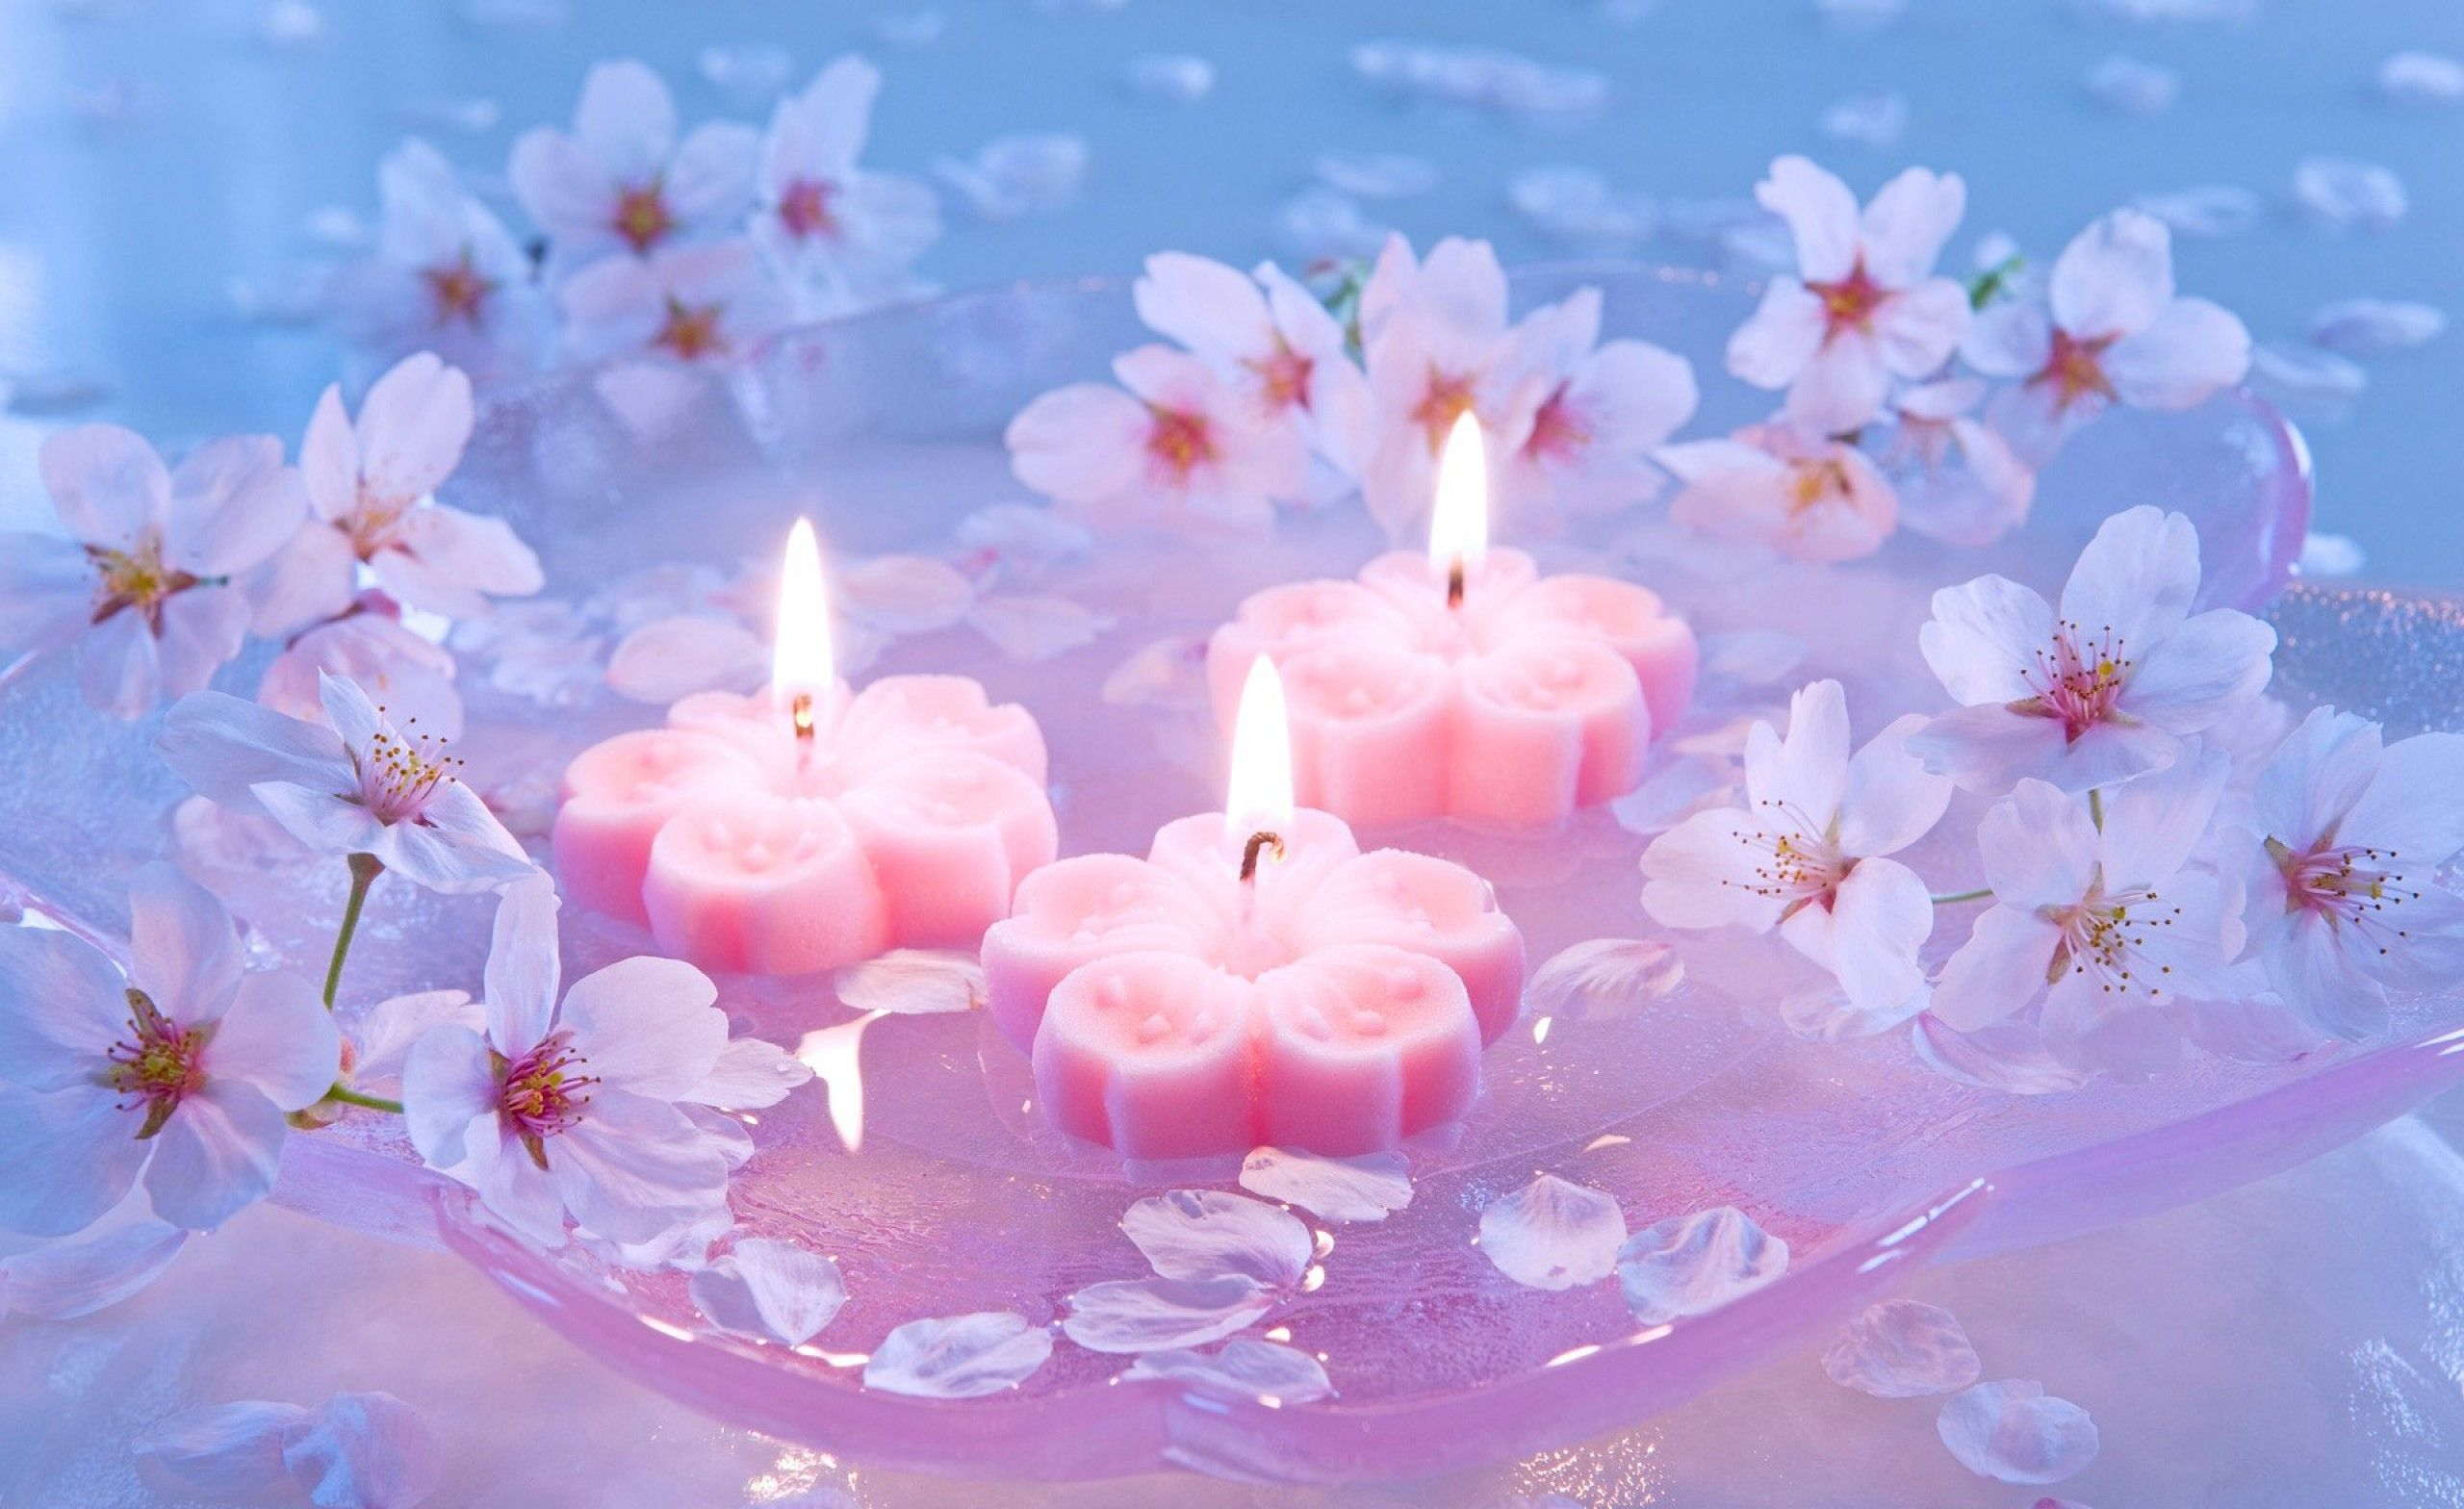 Candles And Cherry Flowers Wallpapers Download HD Desktop